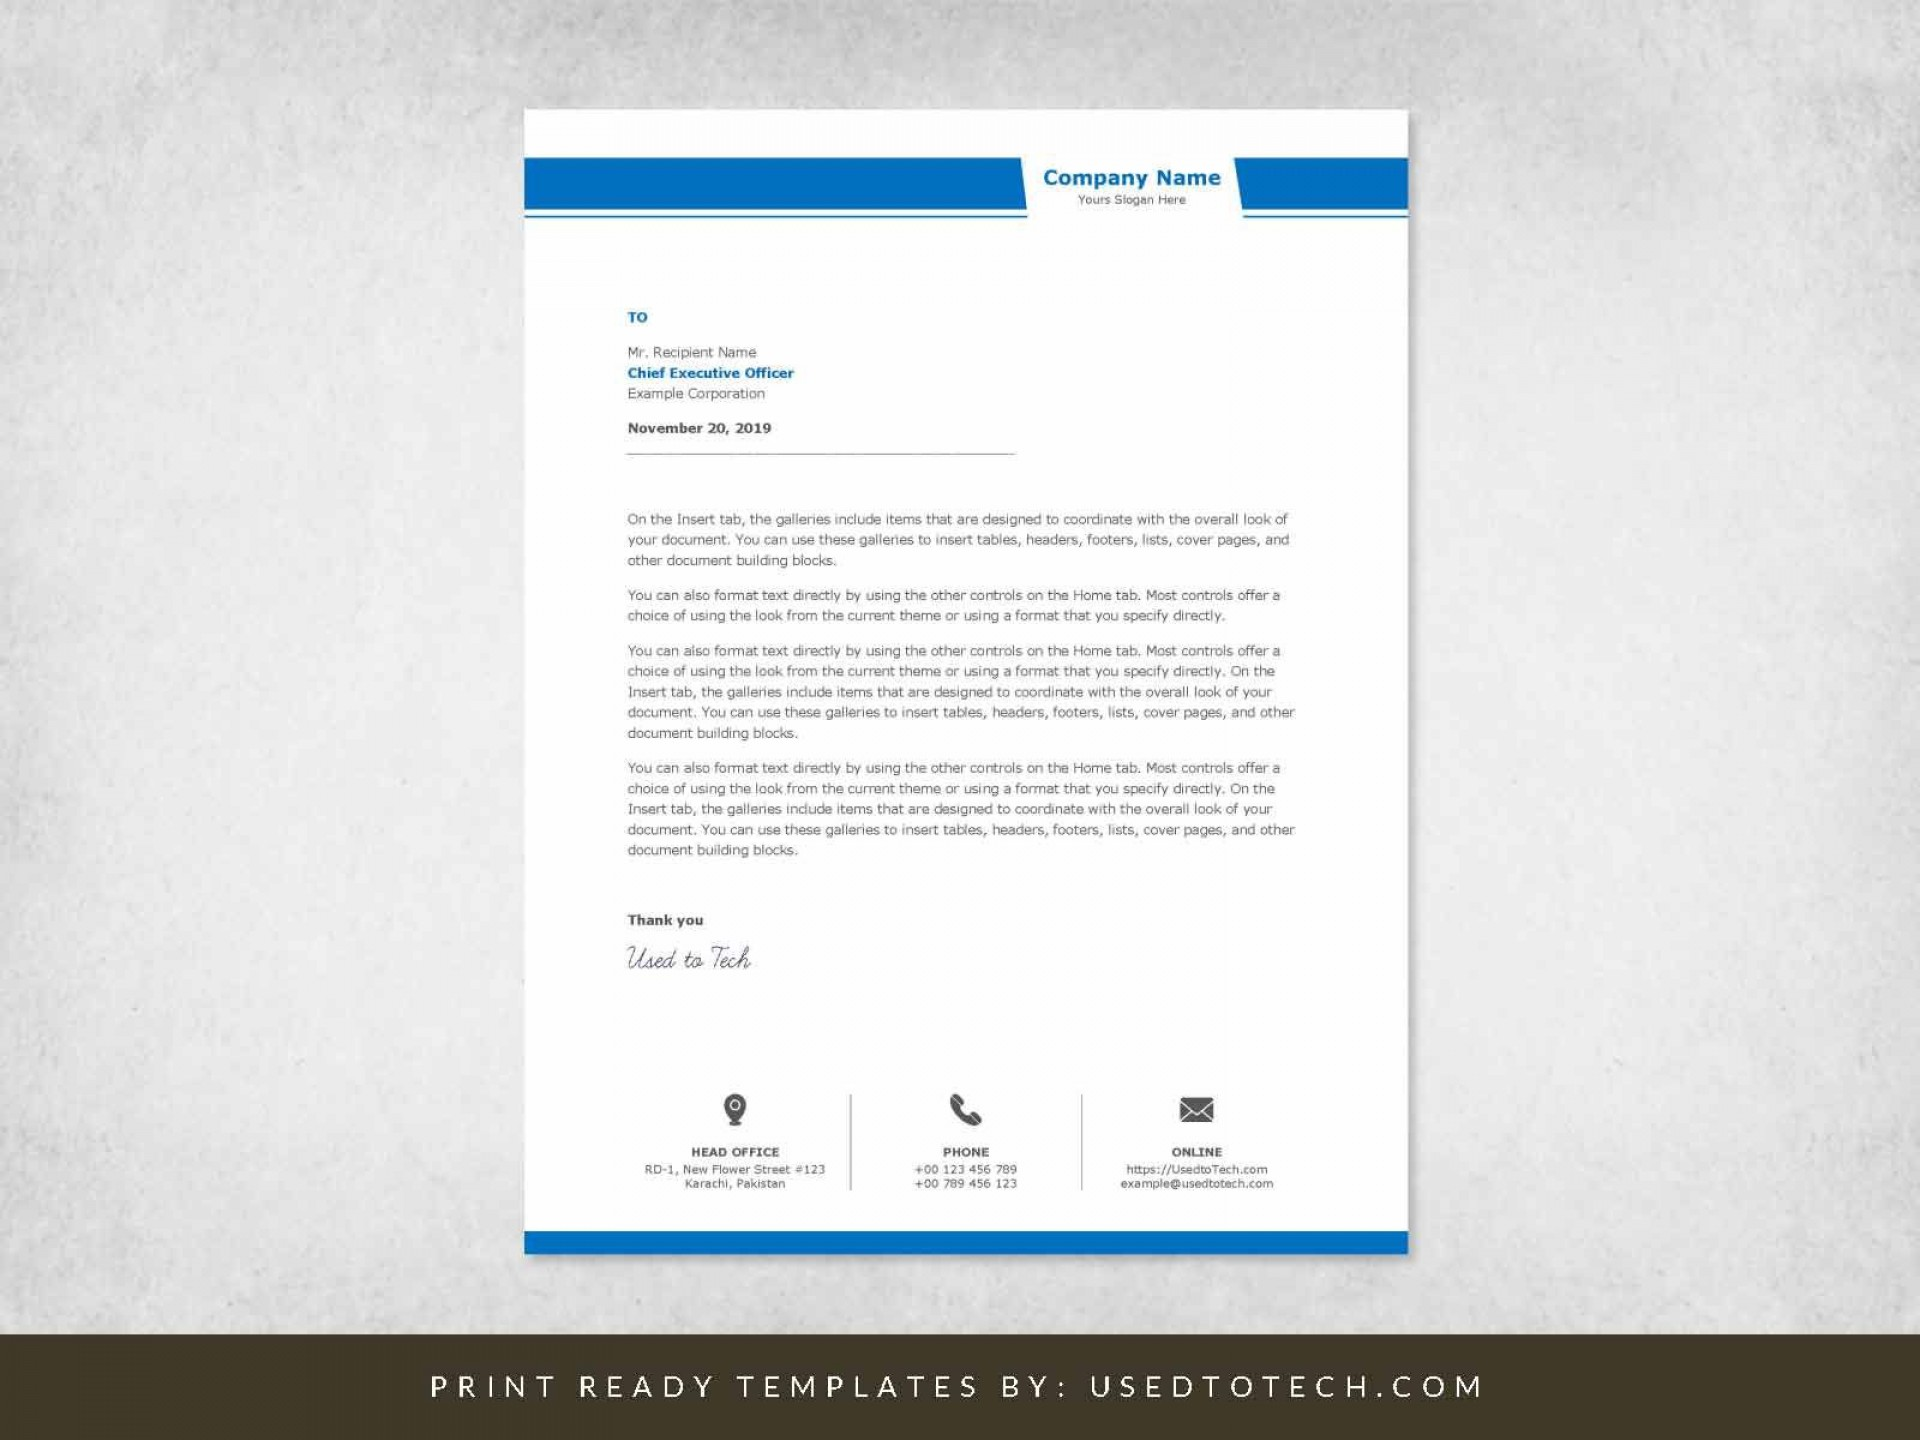 001 Unusual Company Letterhead Template Word High Resolution  Busines 2007 Free Download1920